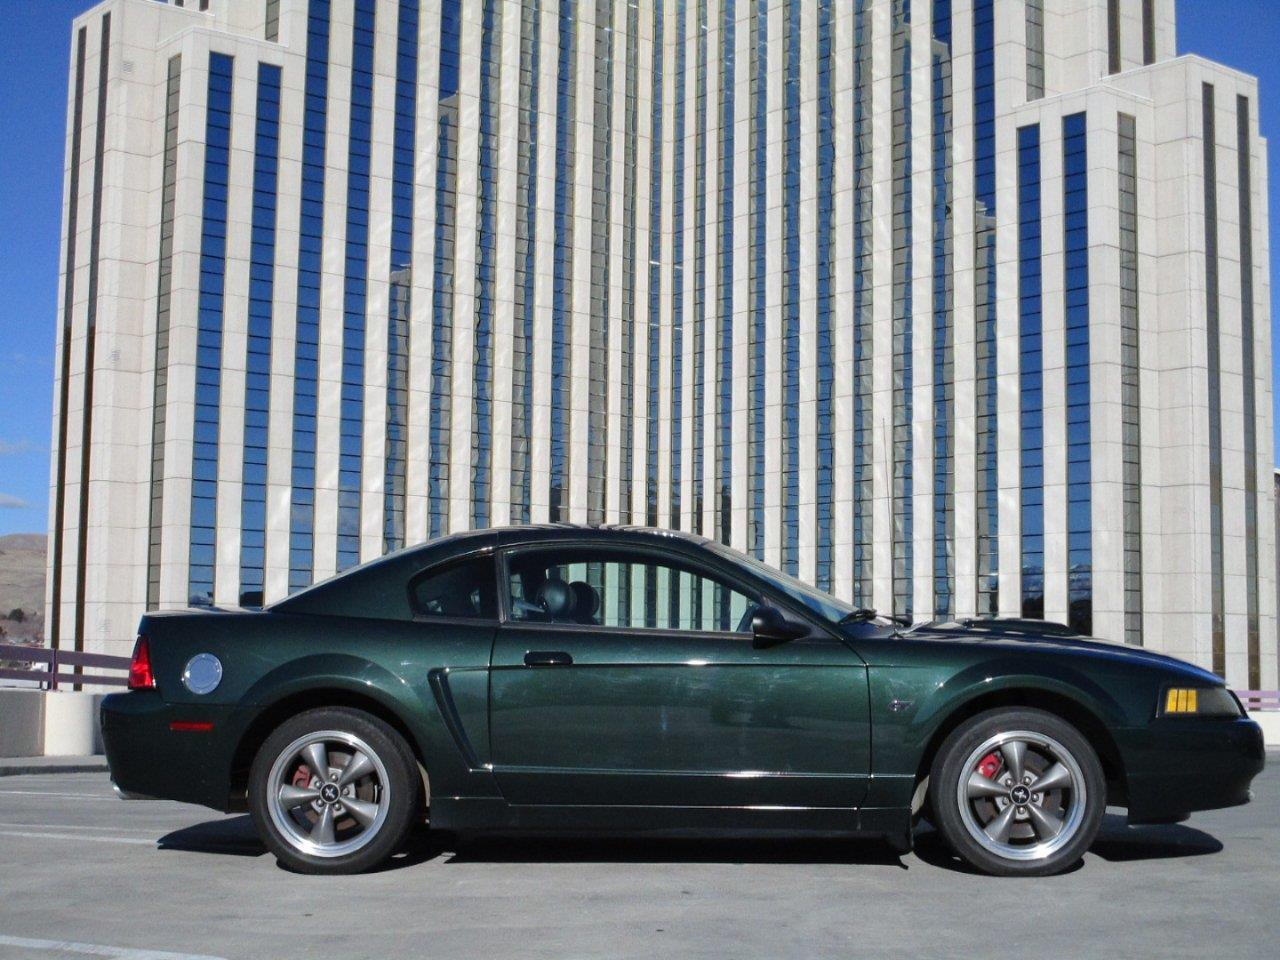 2001 Ford Mustang (CC-1410976) for sale in Reno, Nevada